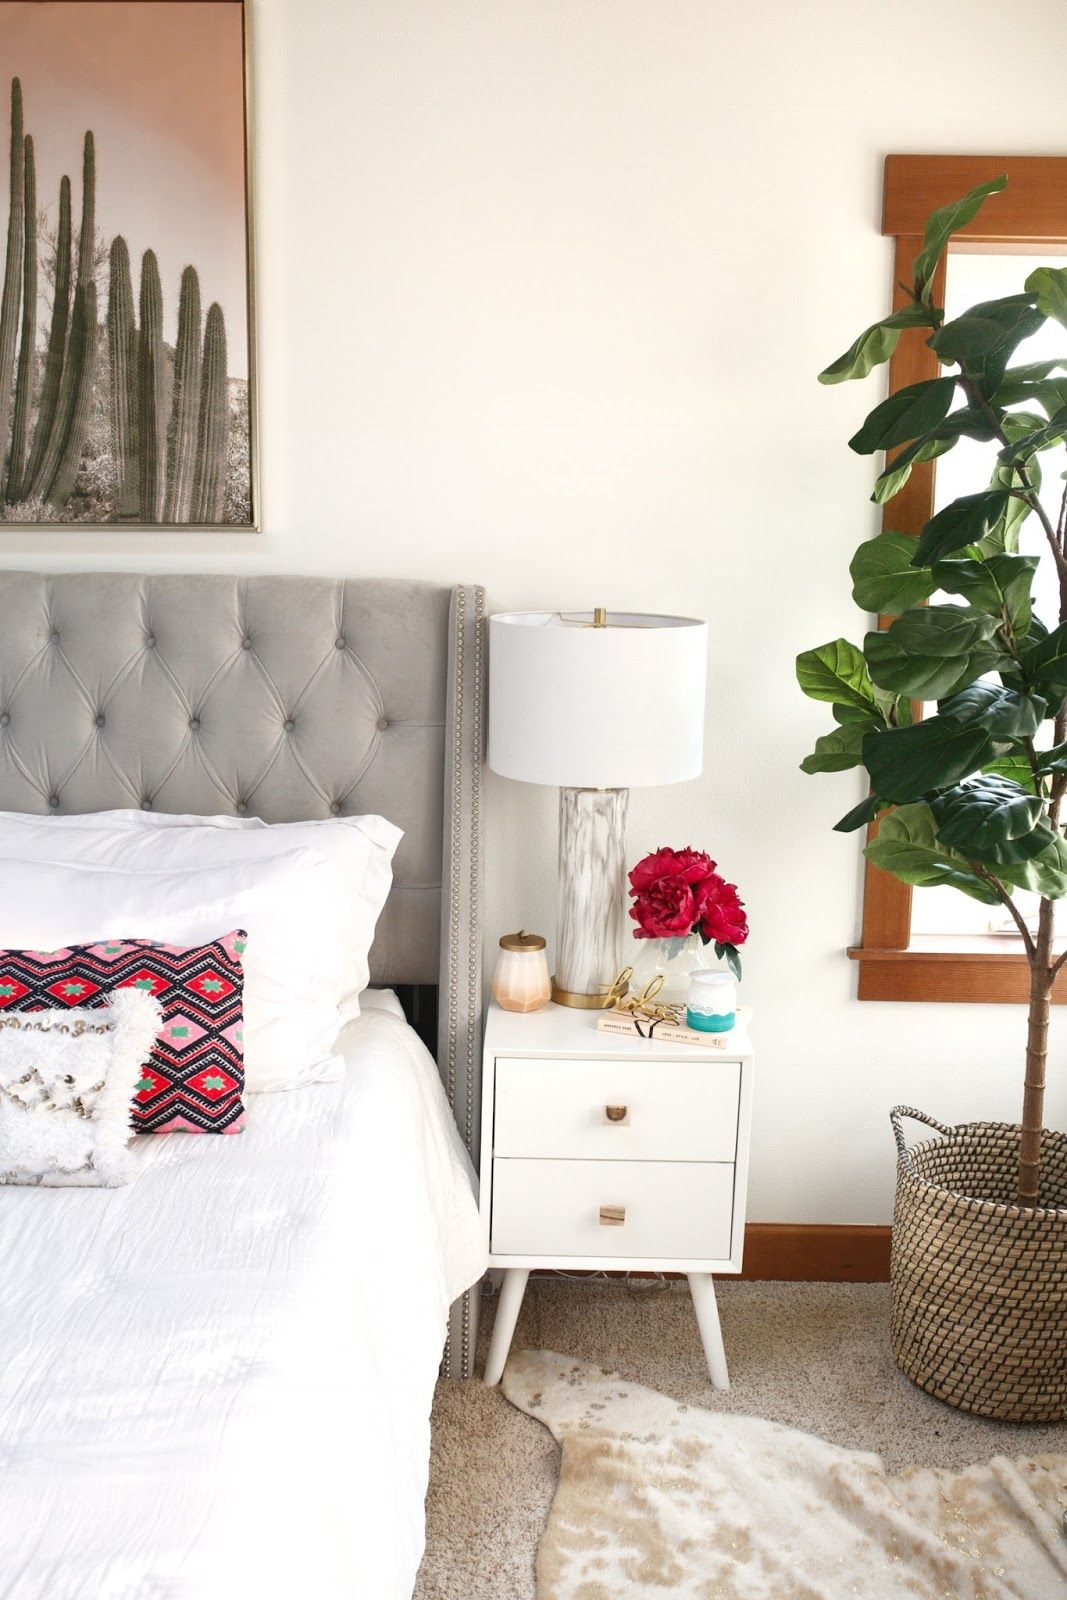 Kopari beauty not your average coconut oil ways  use pink also pin by tonya staab on home decor interiors pinterest bedroom rh